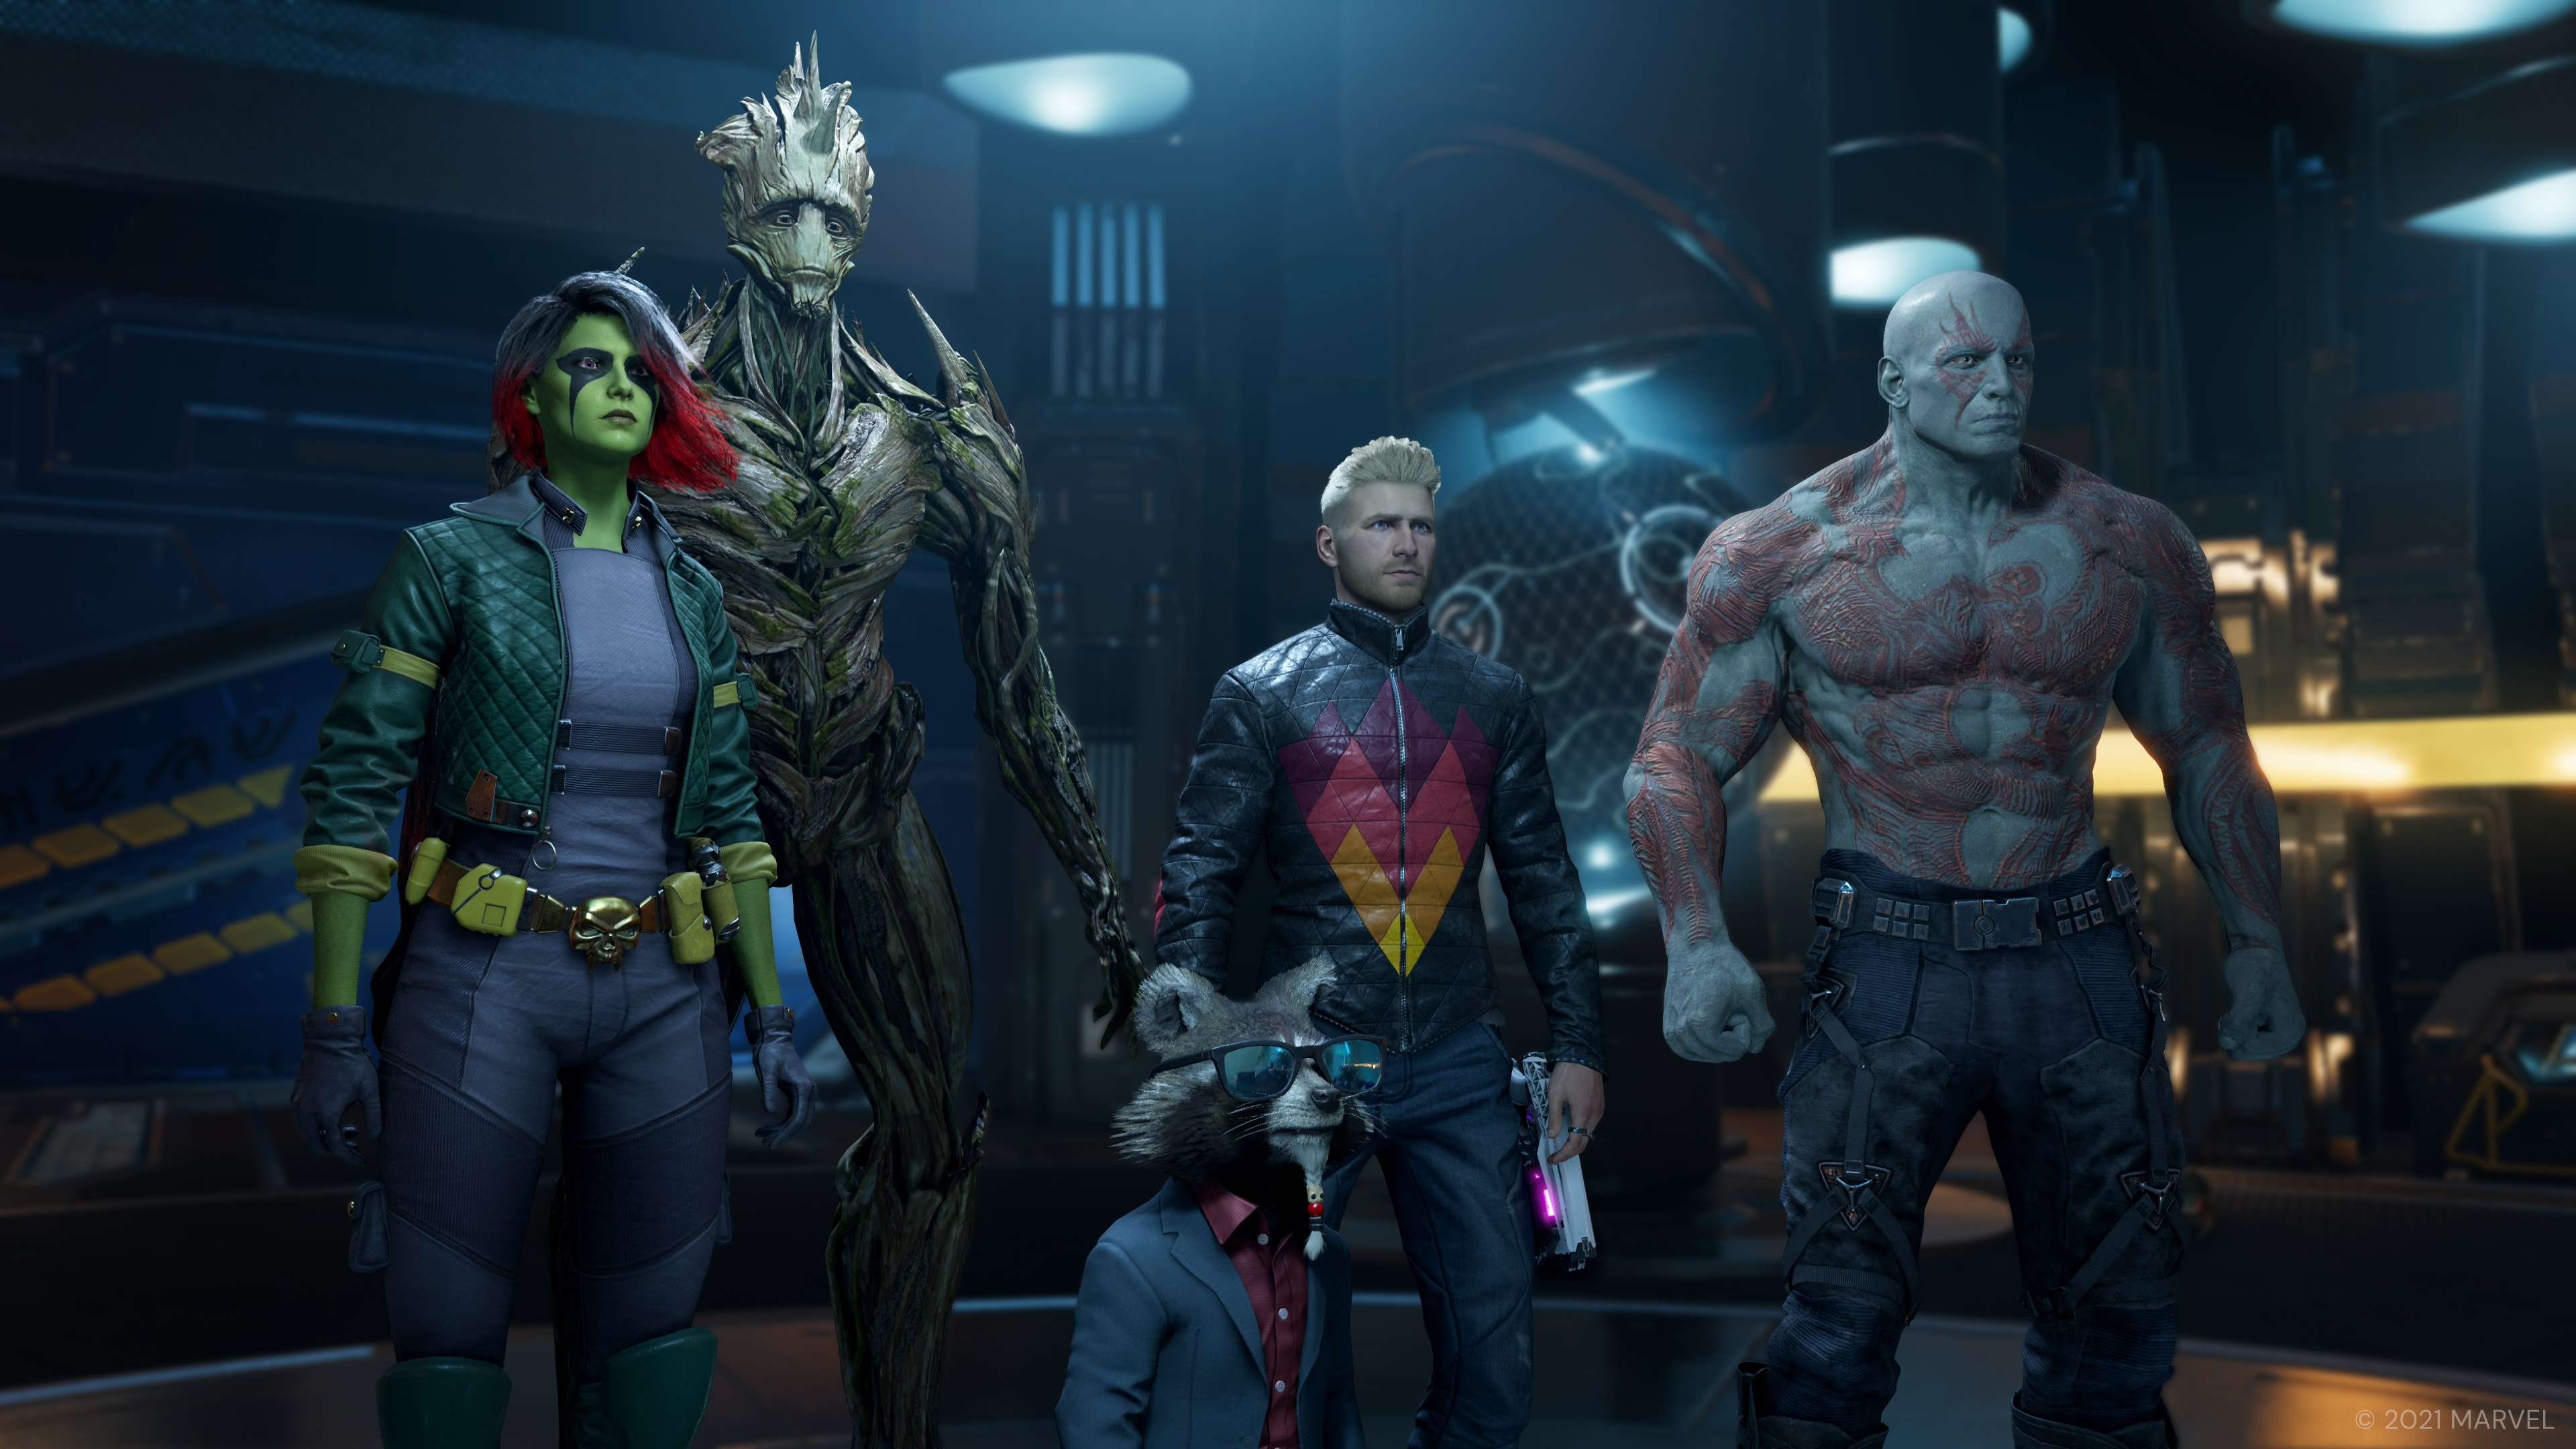 The Guardians of the Galaxy: Gamora, Groot, Rocket, Peter, and Drax